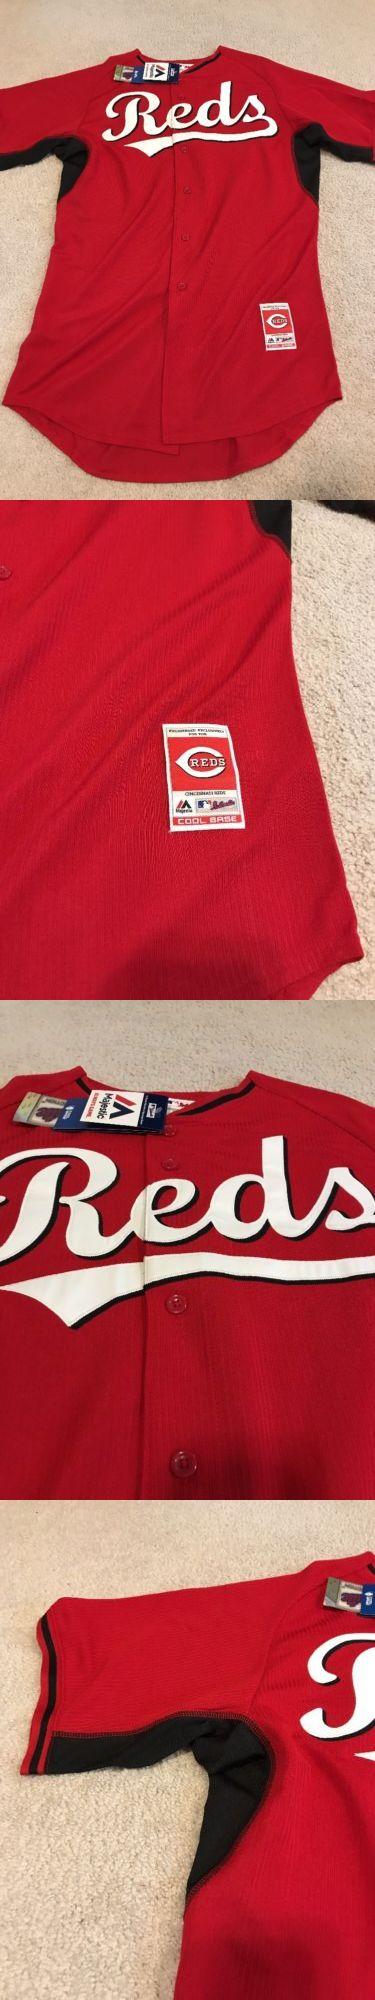 Baseball-MLB 24410: Nwt Cincinnati Reds Baseball Jersey - Authentic Majestic - Red Size 44 -> BUY IT NOW ONLY: $30.99 on eBay!